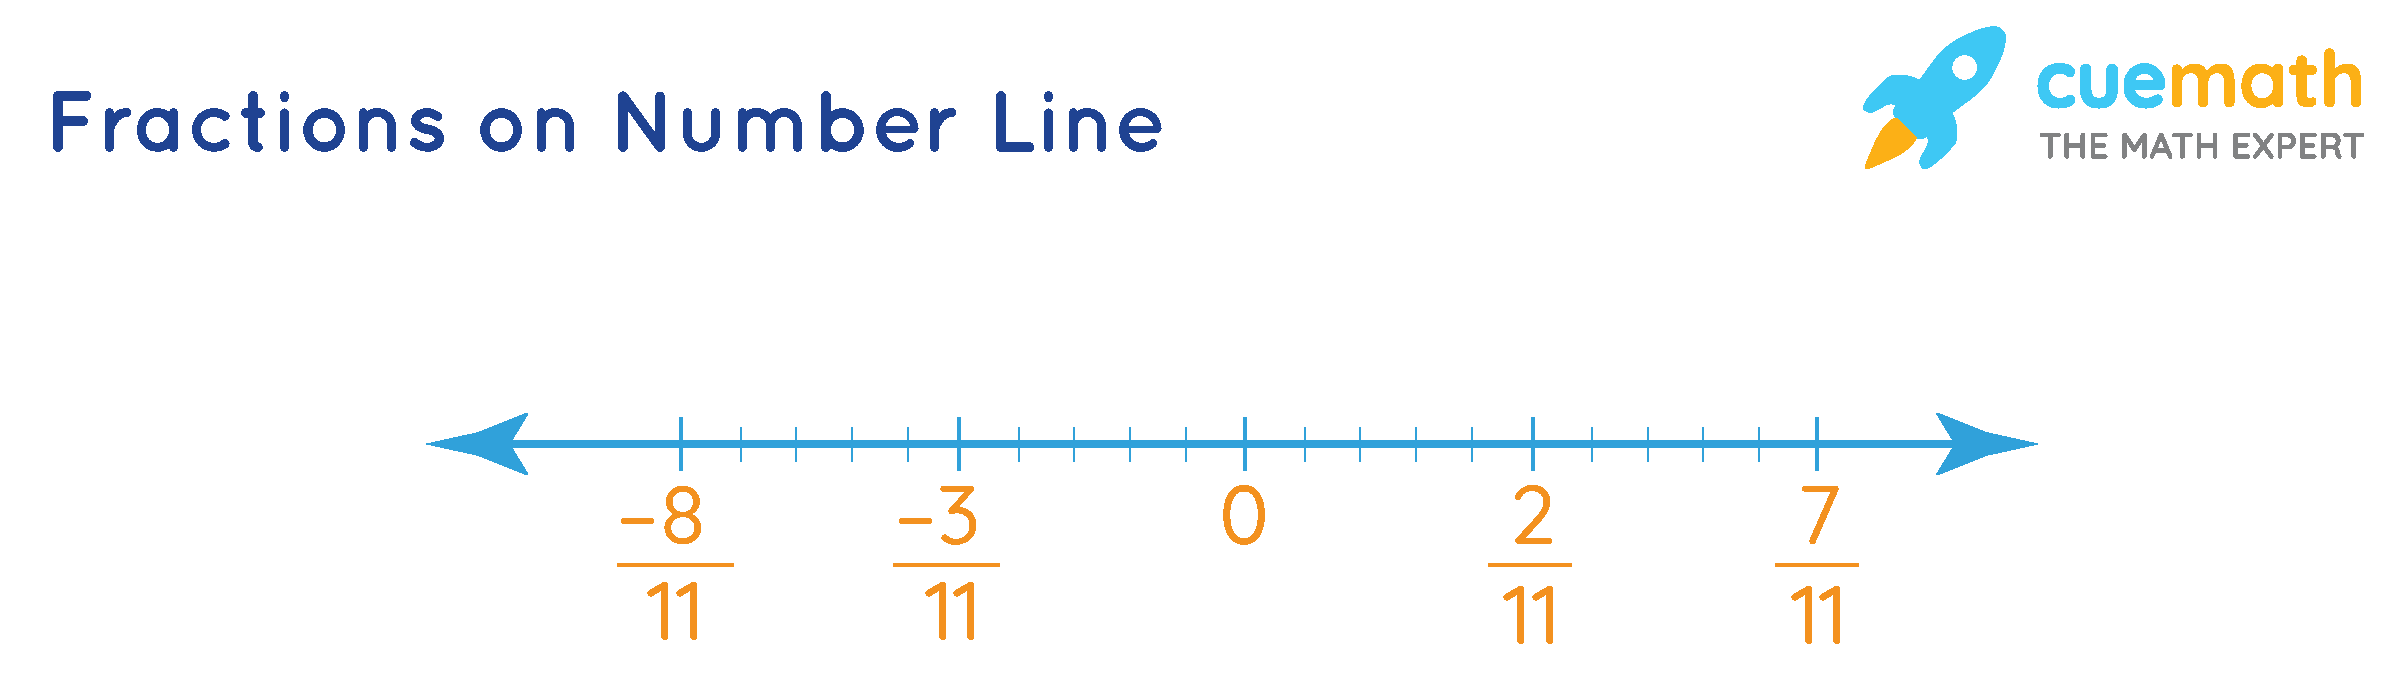 Fractions on Number Line: -8/11, -3/11, 2/11, and 7/11